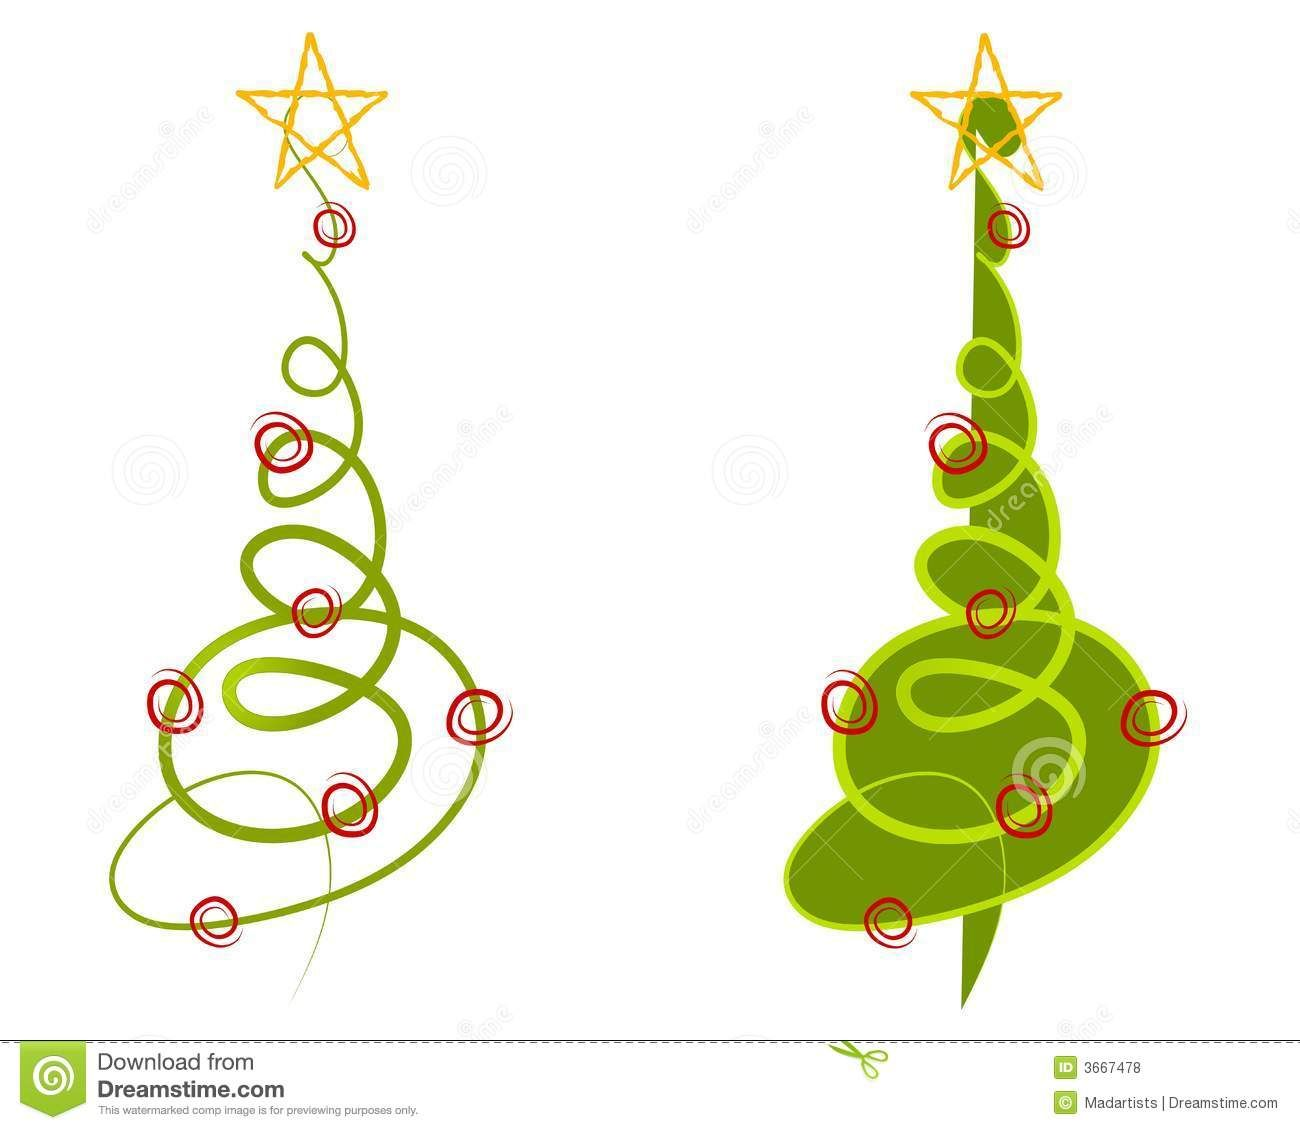 abstract christmas tree clip art royalty free stock photos. Black Bedroom Furniture Sets. Home Design Ideas